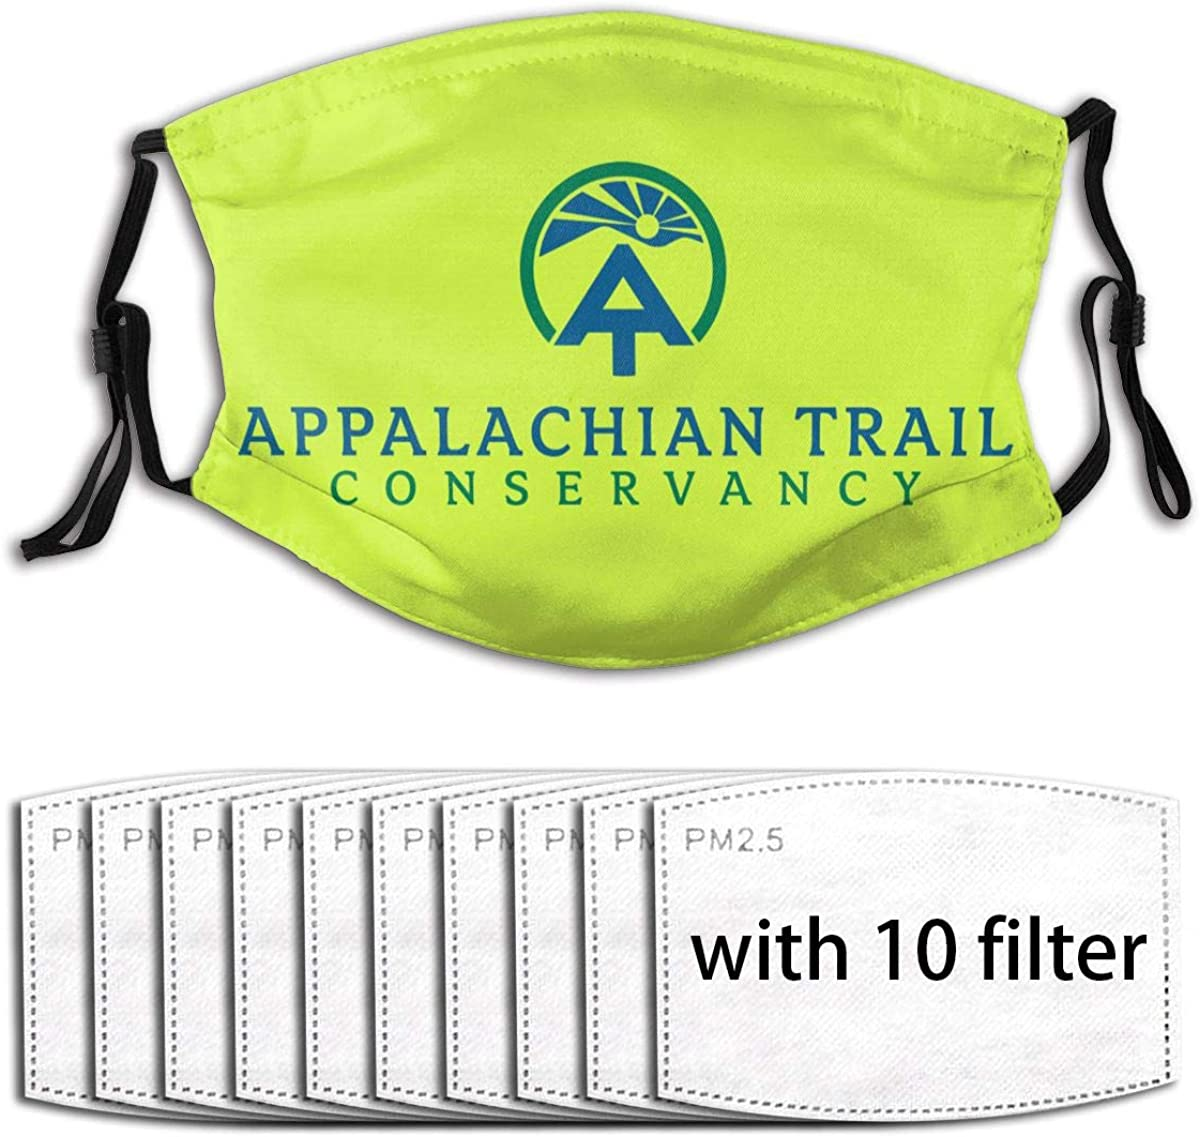 Appalachian Trail at Unisex Dustproof Mask, Comfortable Washable Reusable Funny Facemask for Outdoors